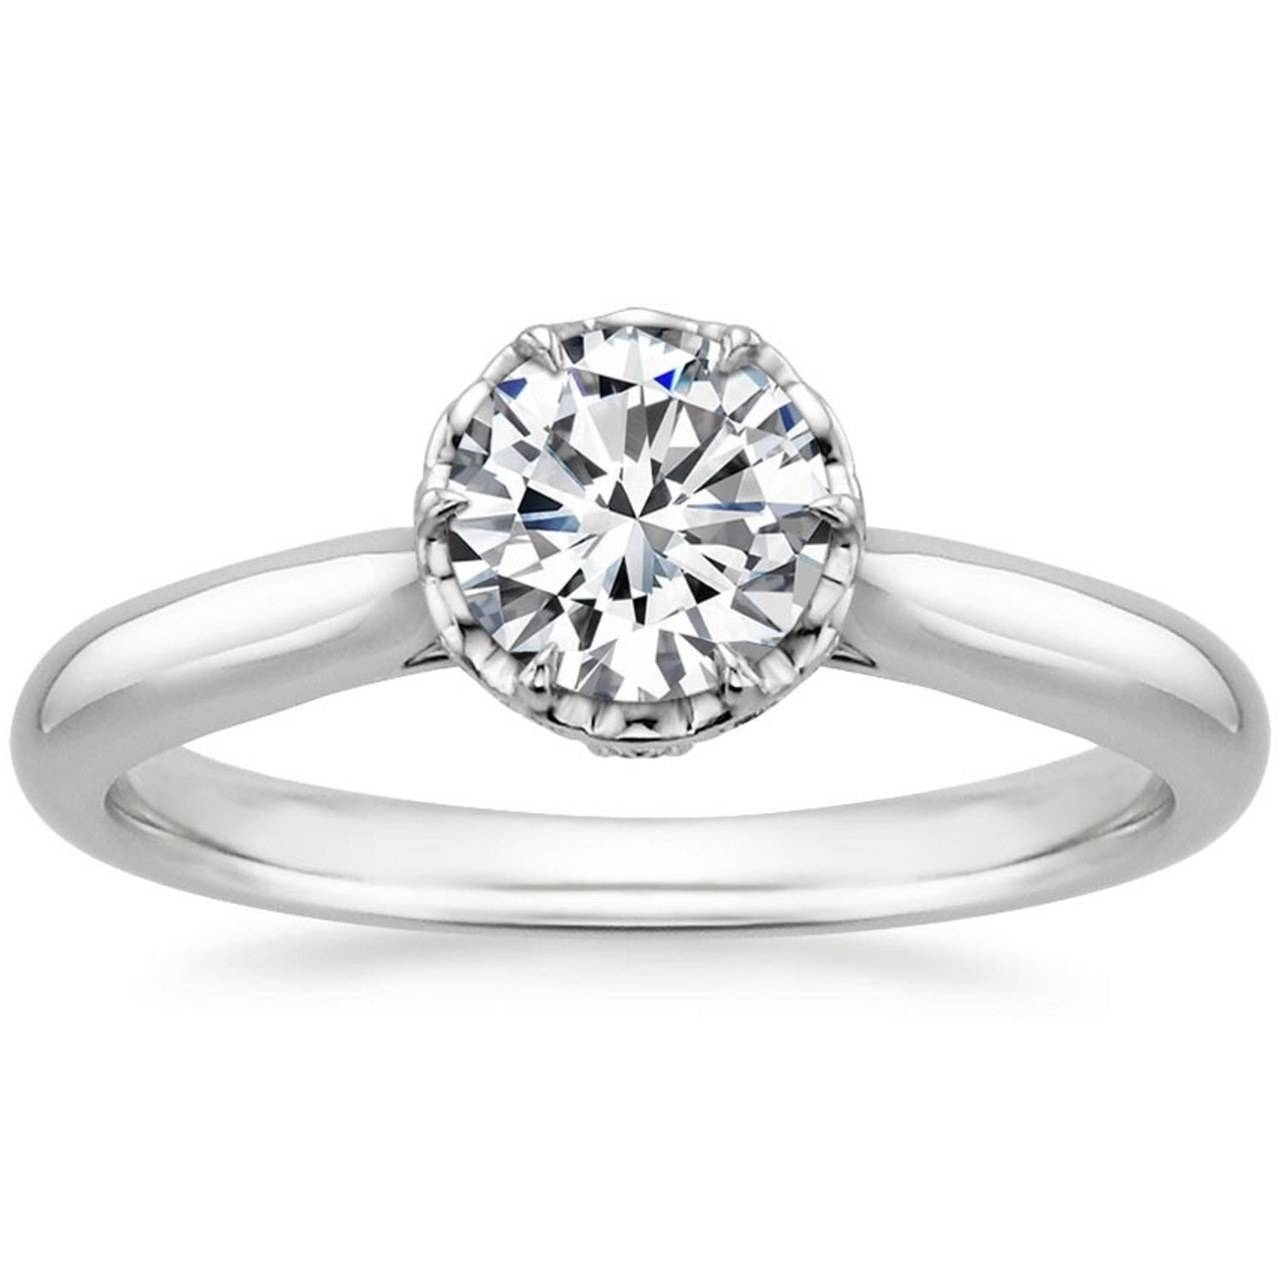 Engagement Rings: Conflict Free Diamond Engagement Rings; Dainty Throughout 5 Diamond Engagement Rings (View 12 of 15)